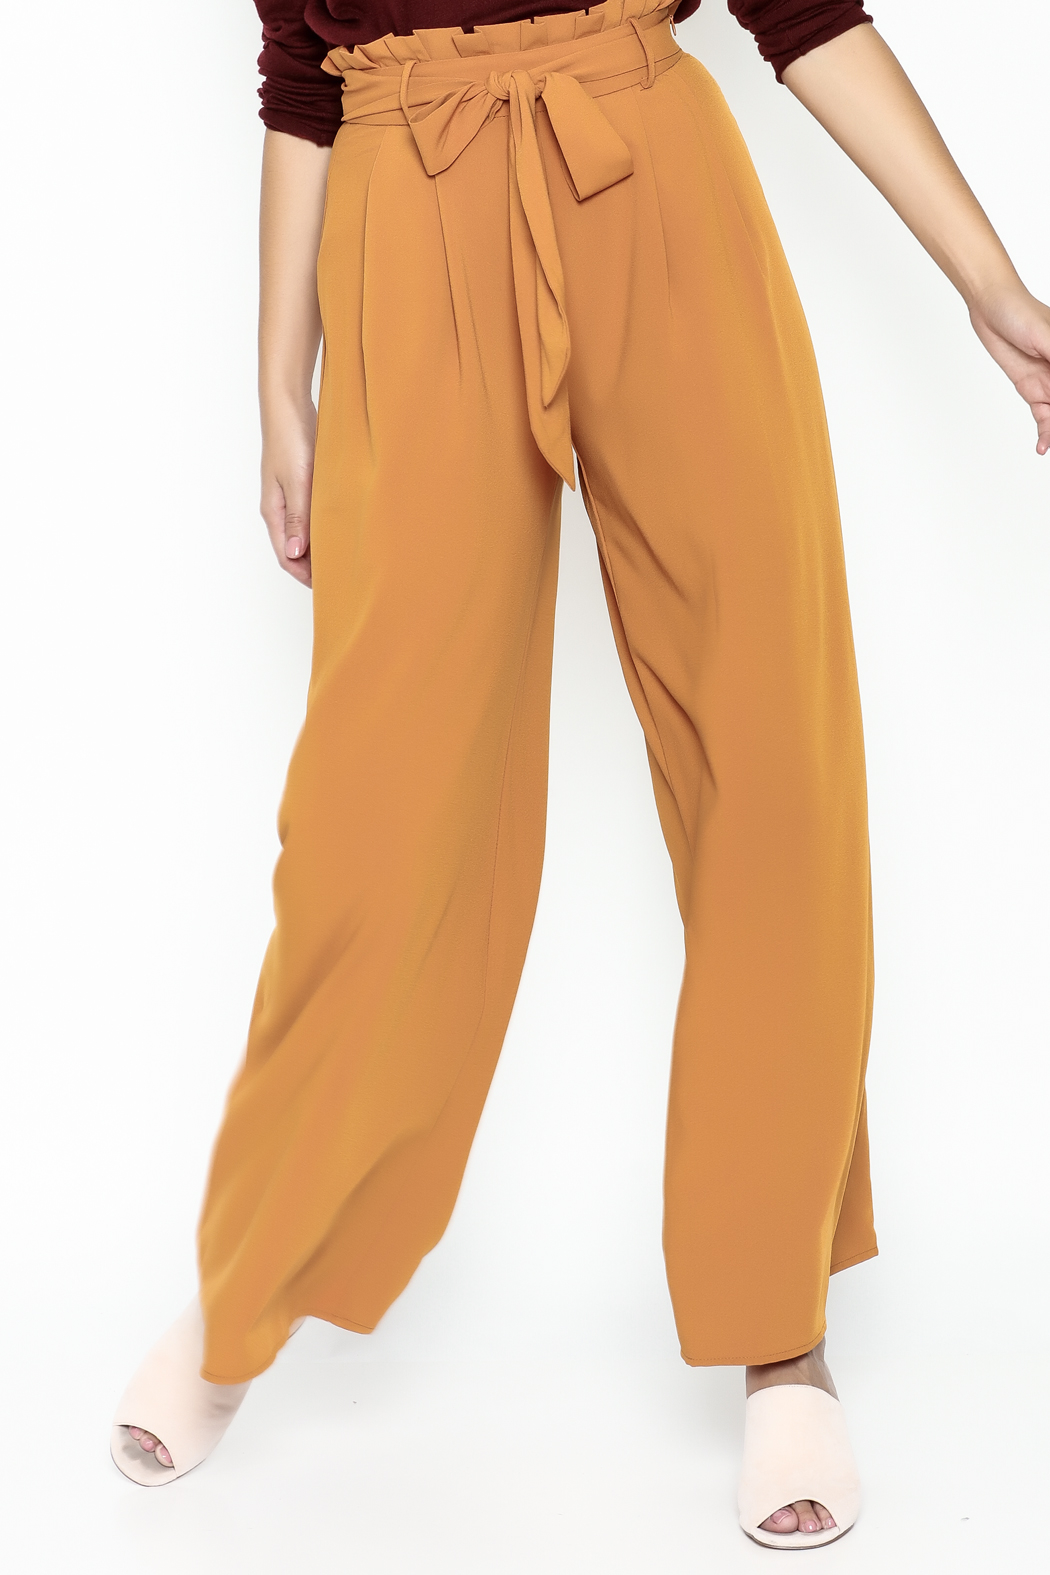 Jealous Tomato Paperbag Waist Pants - Front Cropped Image